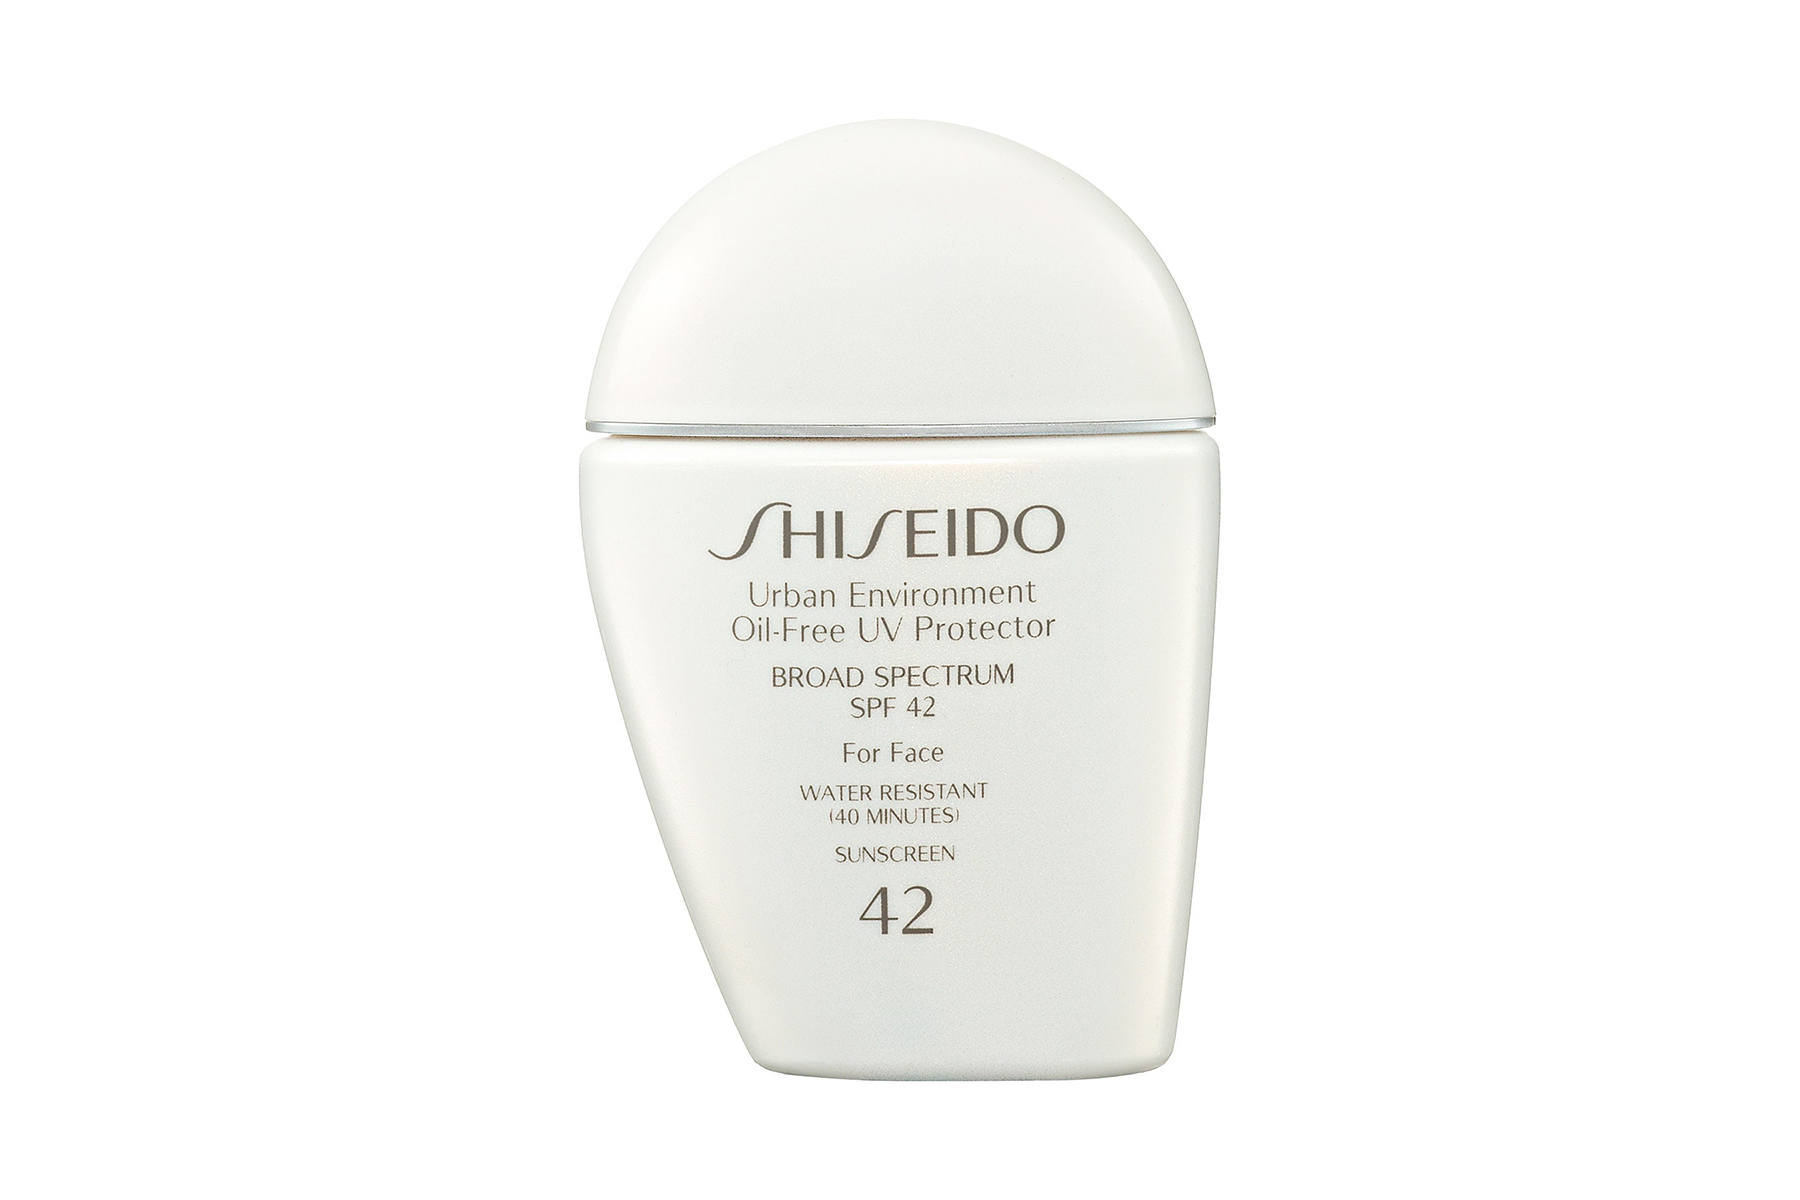 Shiseido Urban Environment Oil-Free Broad Spectrum Face Sunscreen